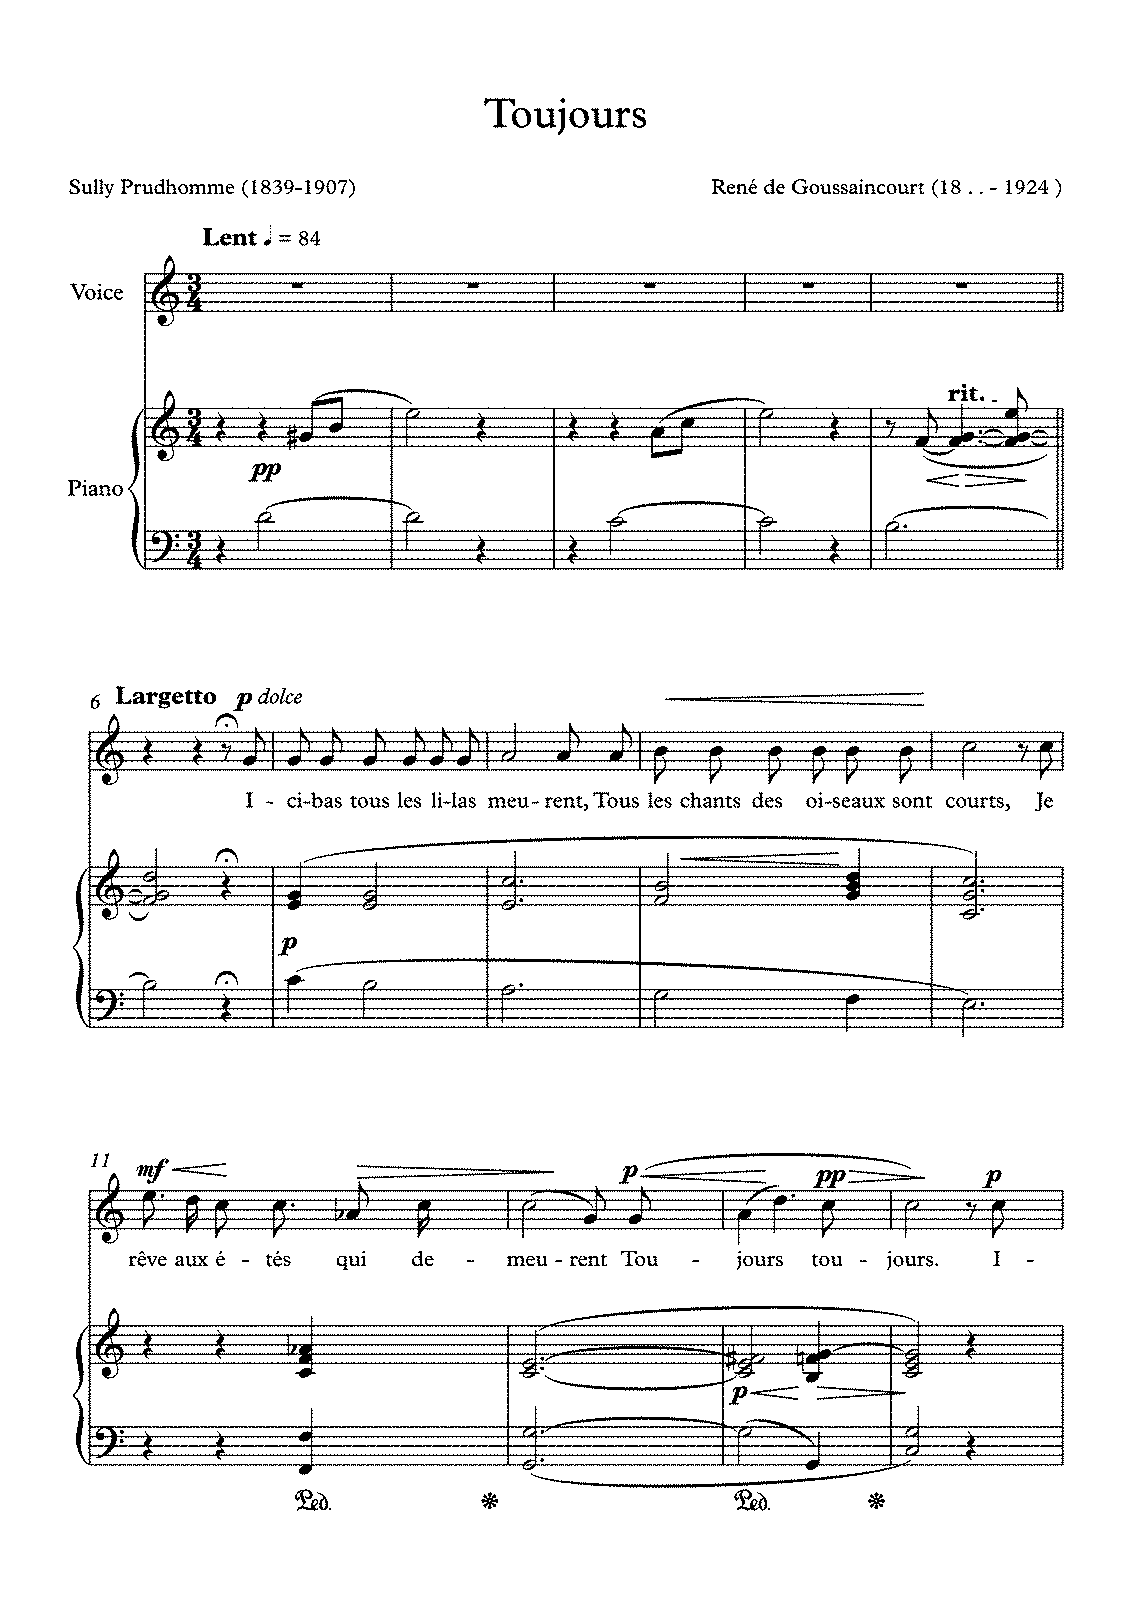 PMLP563066-Toujours (Goussaincourt - Sully Prudhomme) - Full Score.pdf